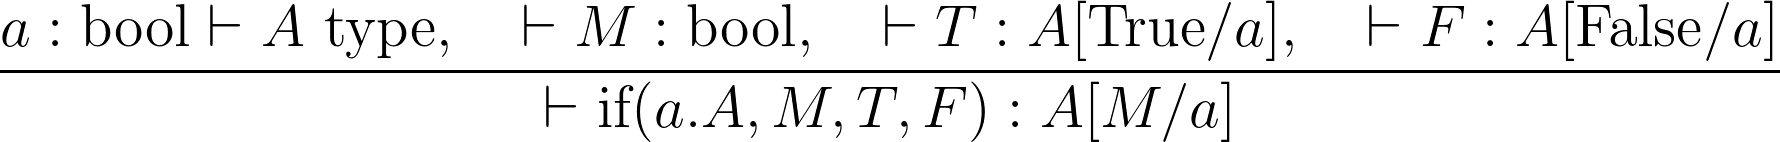 The basic typing rule for the dependent if function